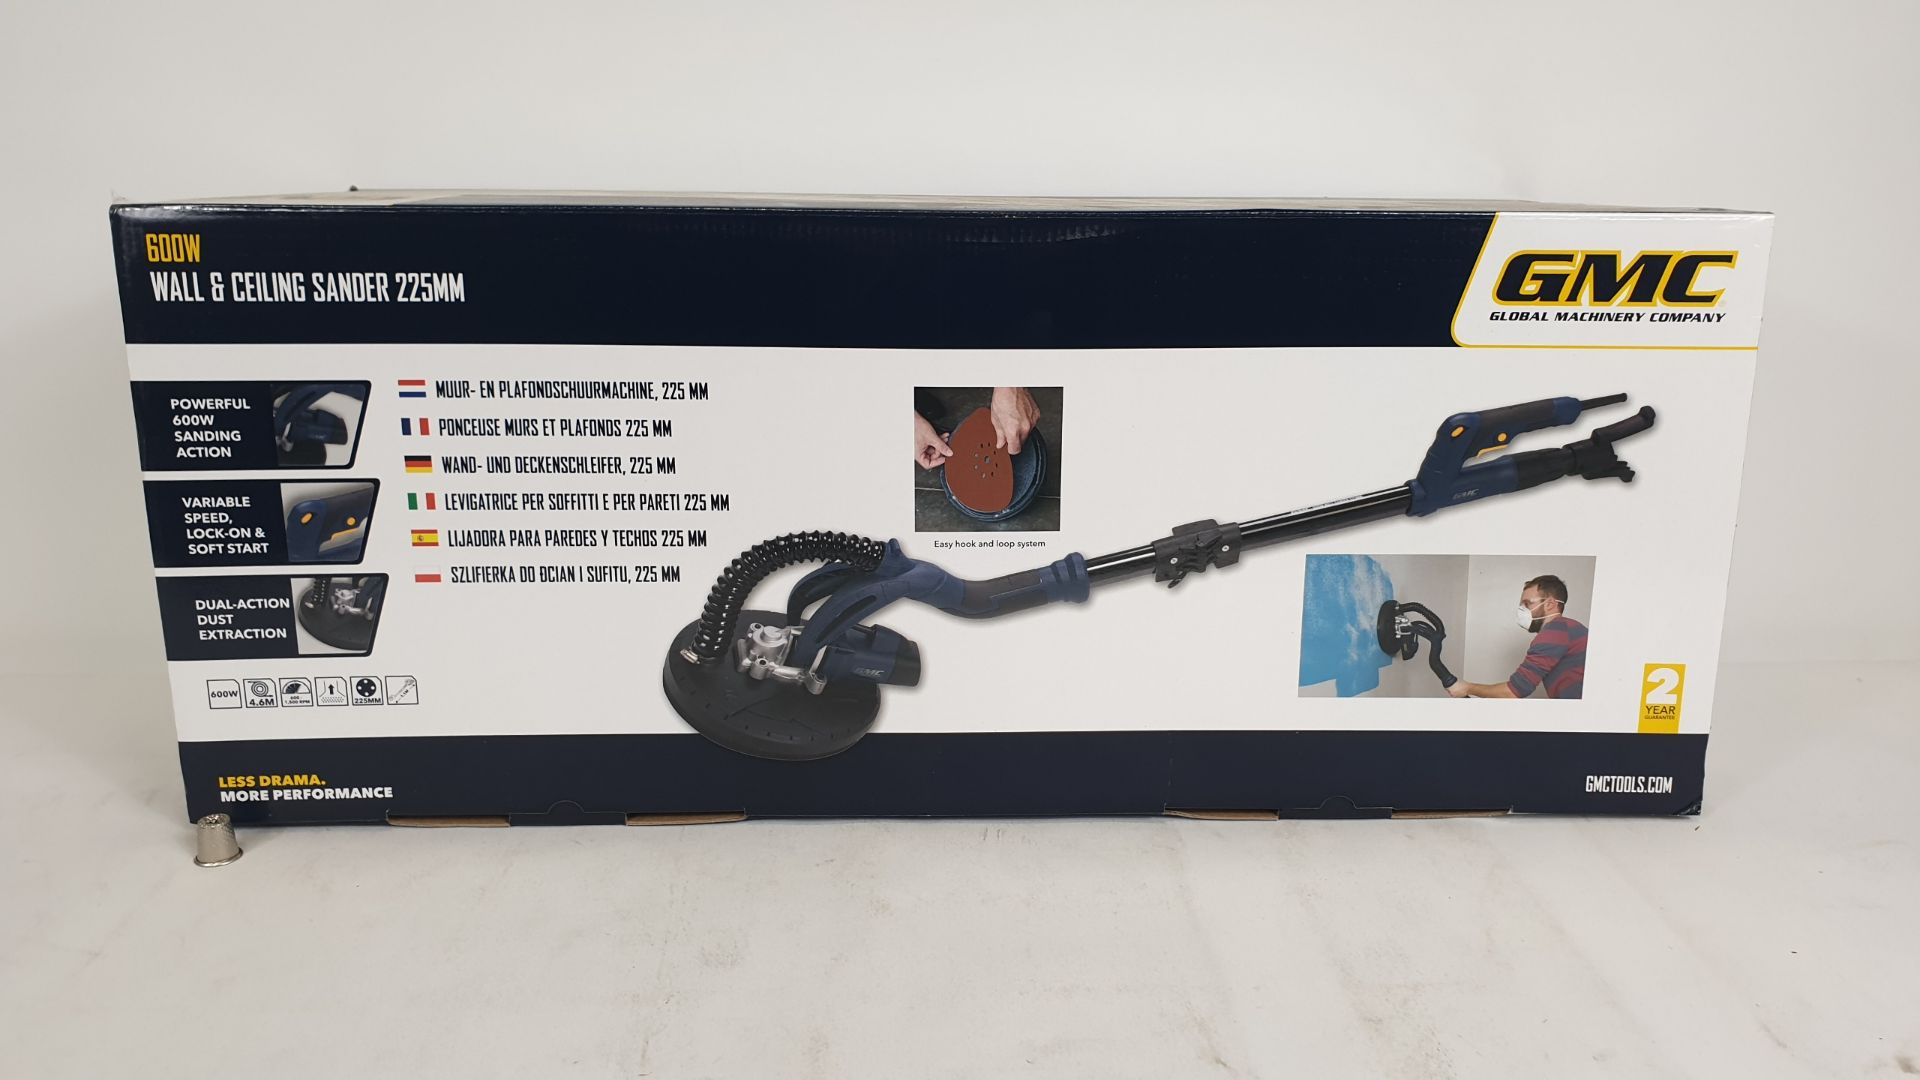 Lot 1556 - (LOT FOR THURSDAY 28TH MAY AUCTION) GMC 600W WALL AND CEILING SANDER 225M (PRODUCT CODE 264803) - (